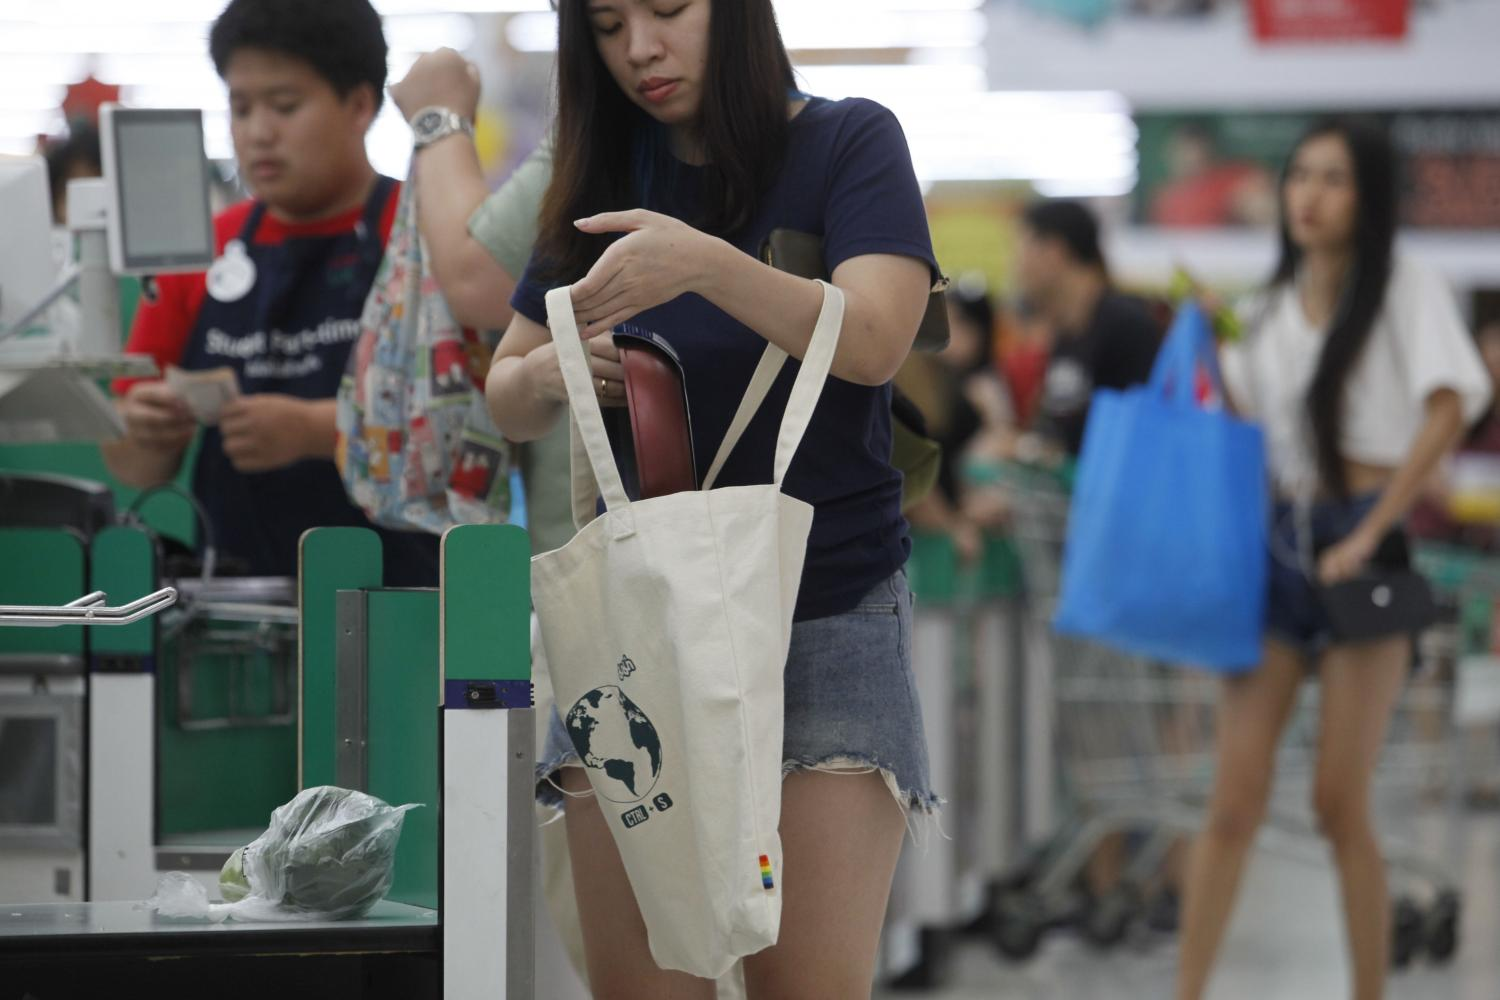 Thai consumers begin to bought their own bags for buying products at local grocery stores after most retail distribution channels have stopped to provide plastic bags from early 2020. (Photo by Wichan Charoenkiatpakul)